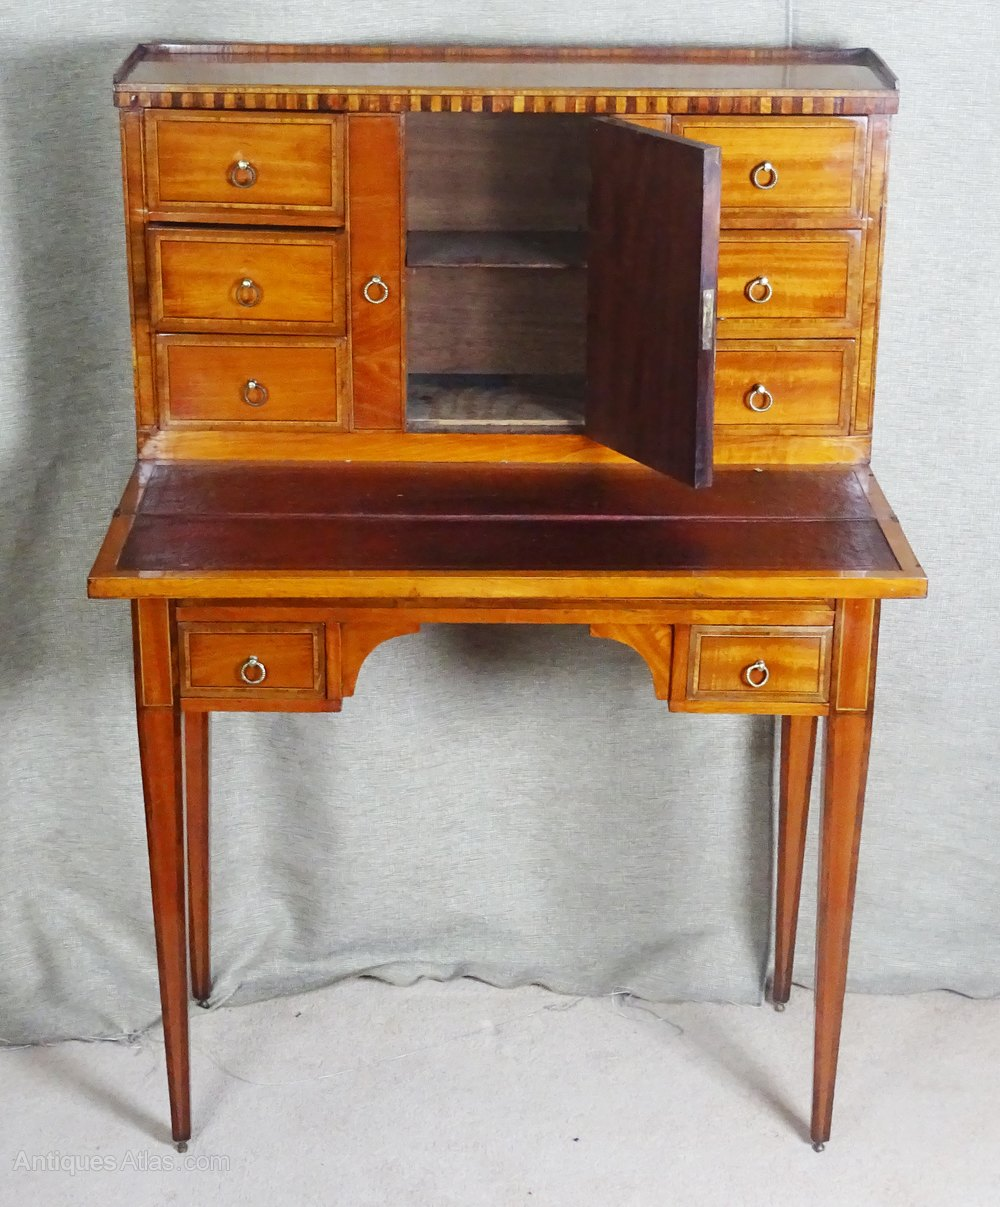 small ladies writing desk Find and save ideas about painted desks on pinterest | see more ideas about white and yellow desk, yellow desk and 3 drawer white desk.